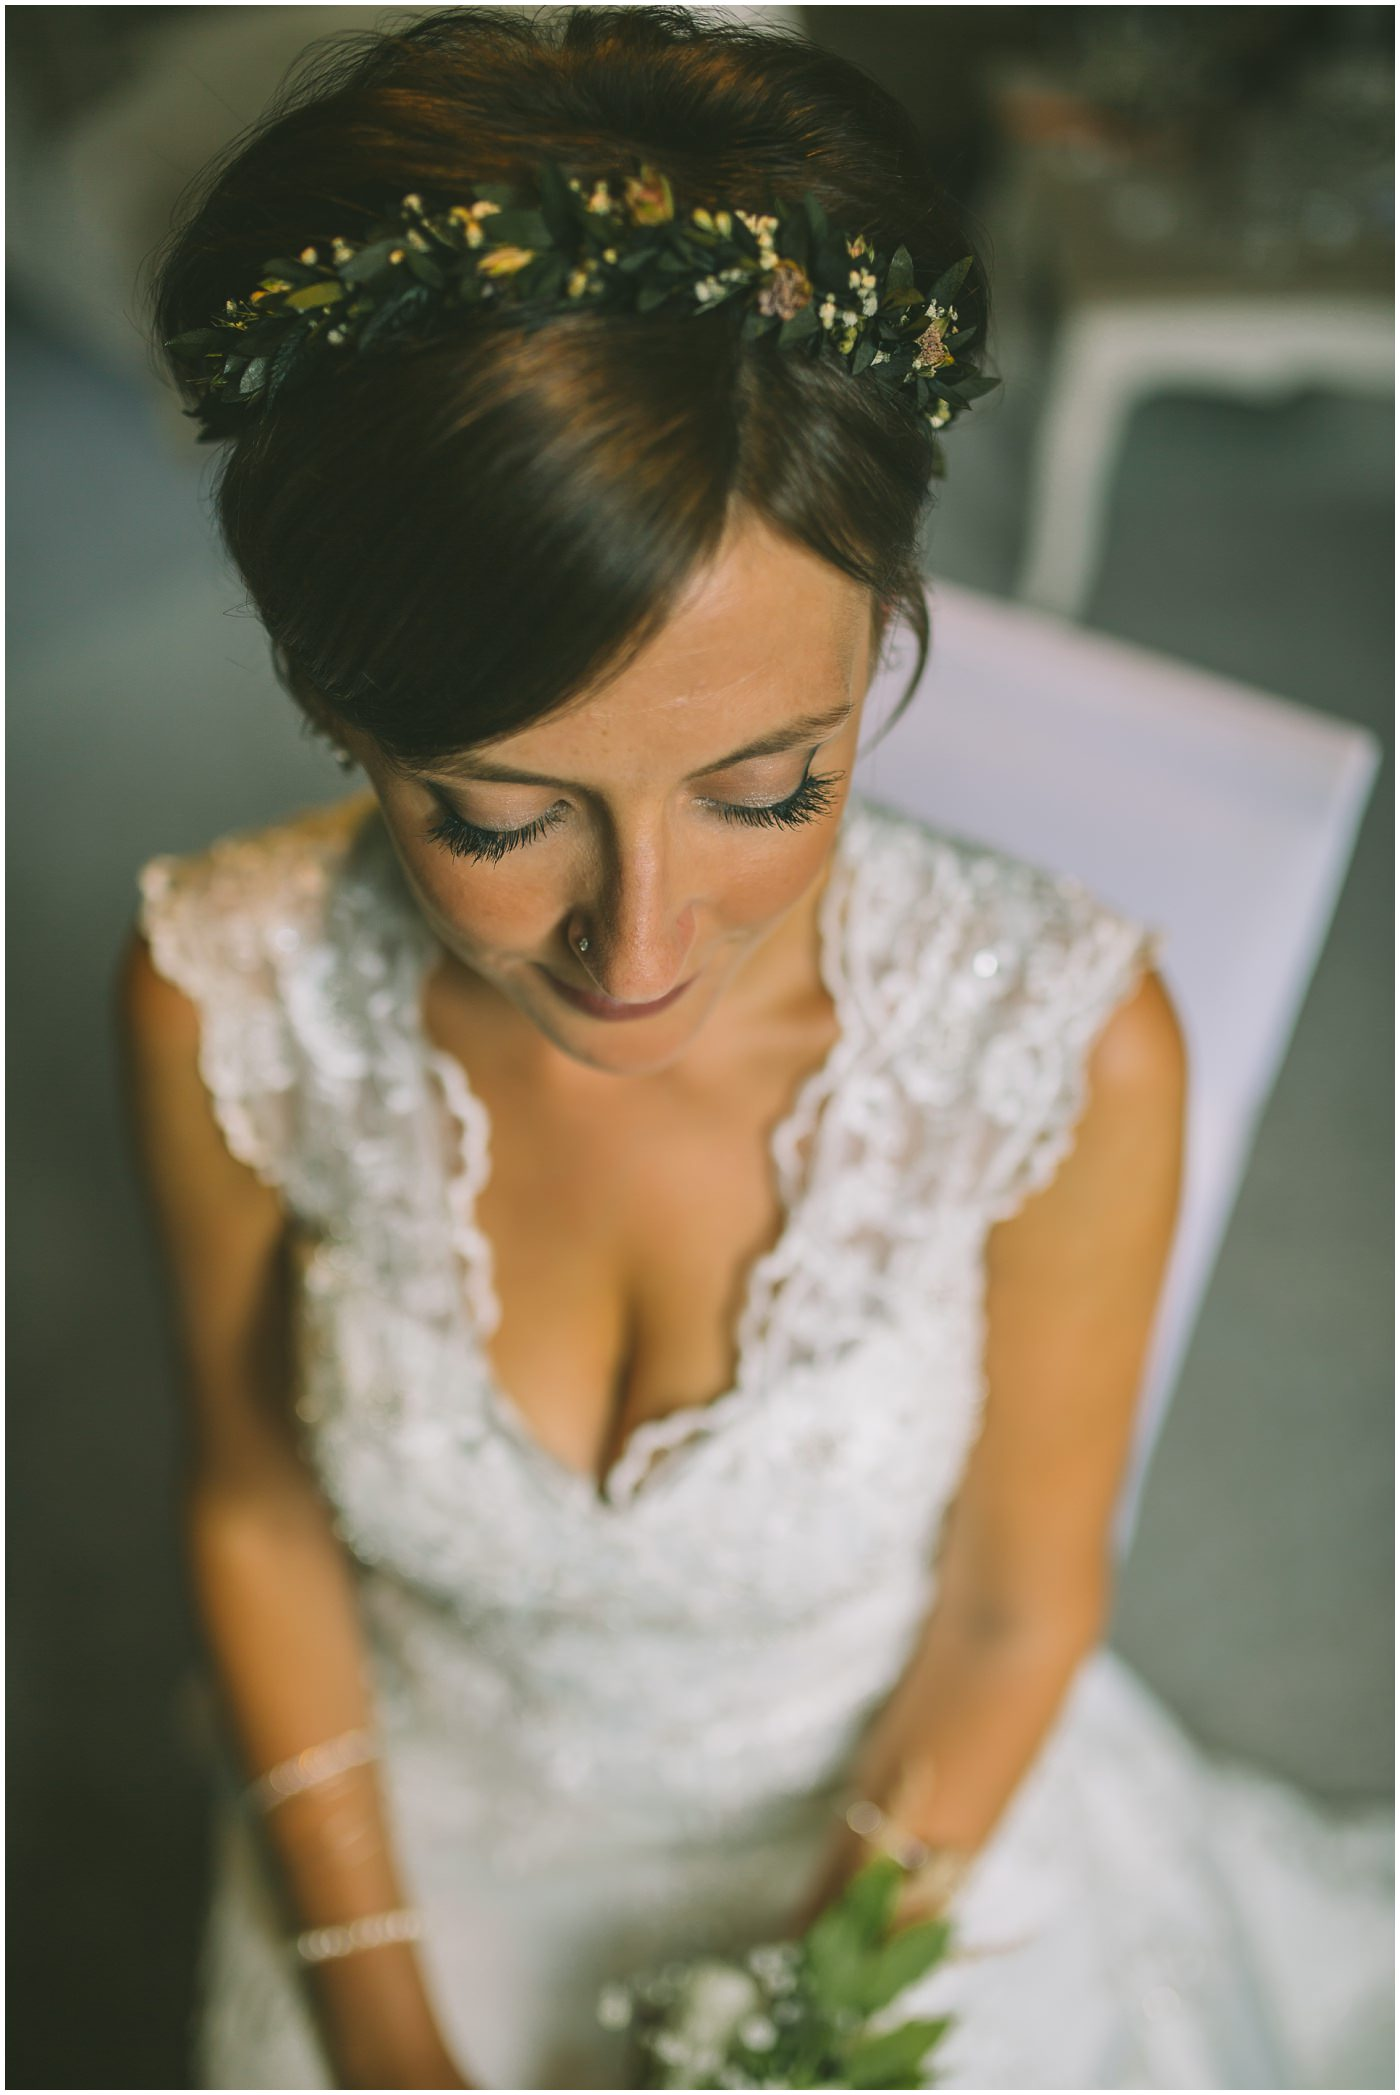 Bridal portrait in beautiful window light in bridal prep room